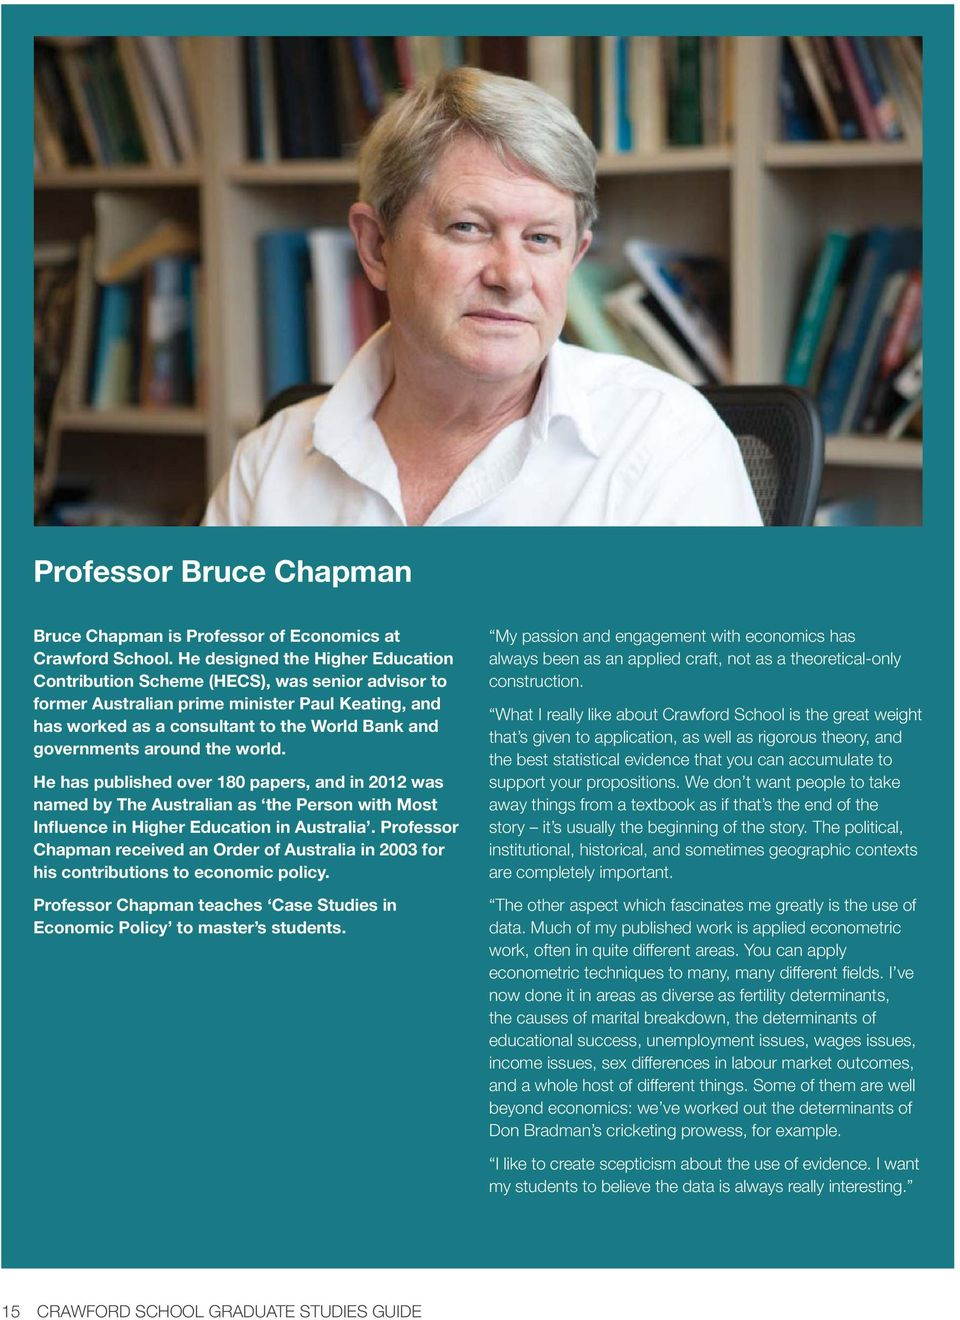 around the world. He has published over 180 papers, and in 2012 was named by The Australian as the Person with Most Influence in Higher Education in Australia.